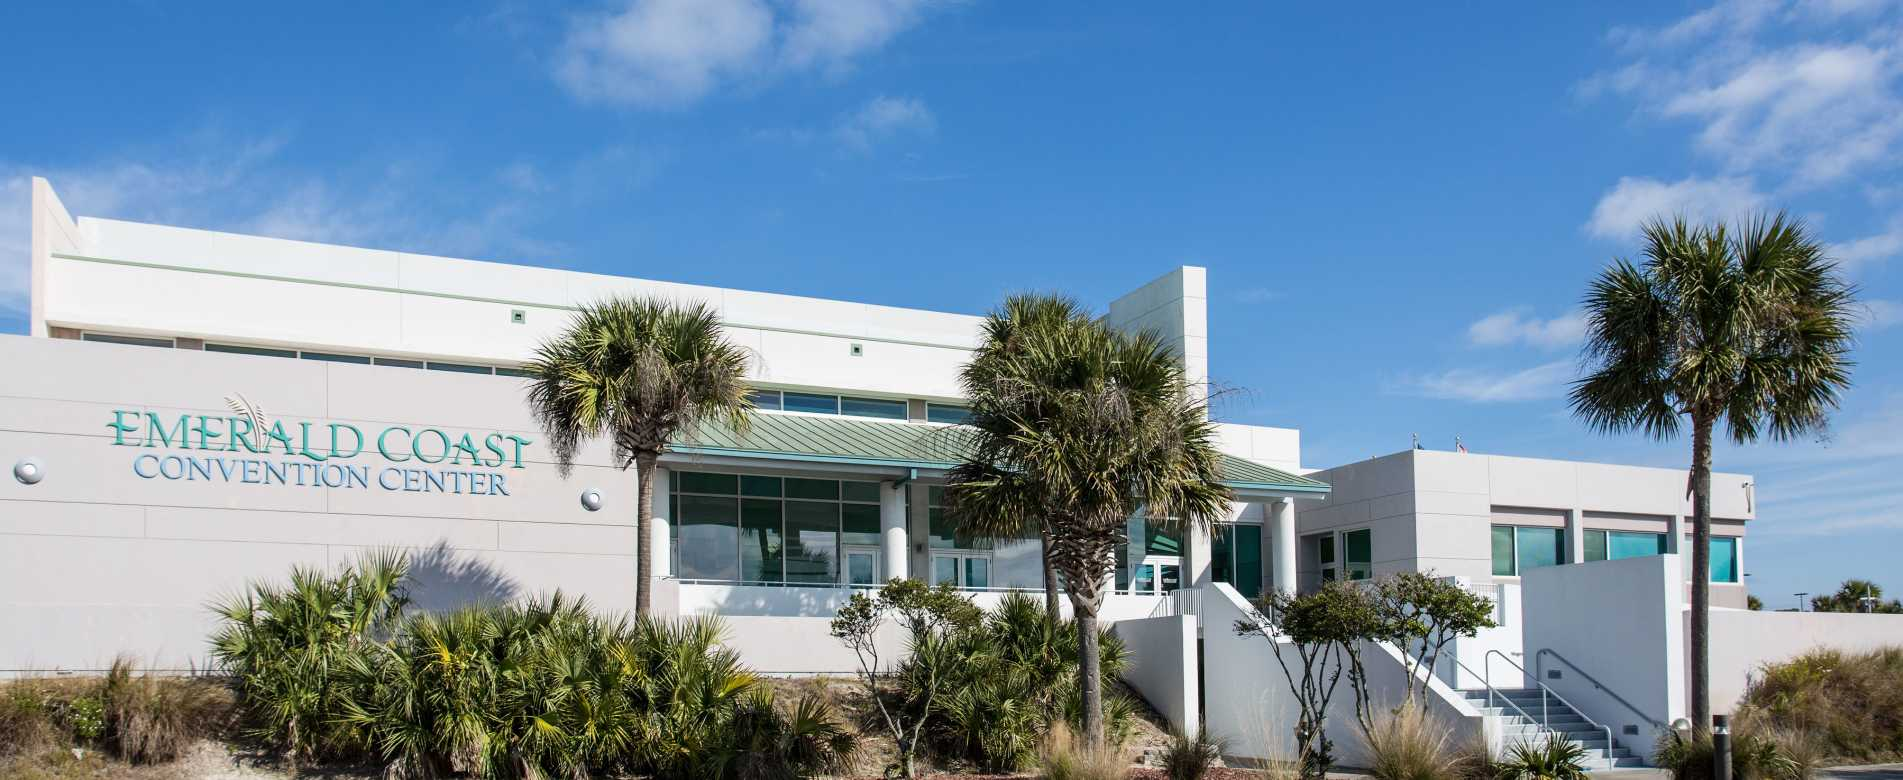 Submit a Request for Proposal | Emerald Coast Convention Center